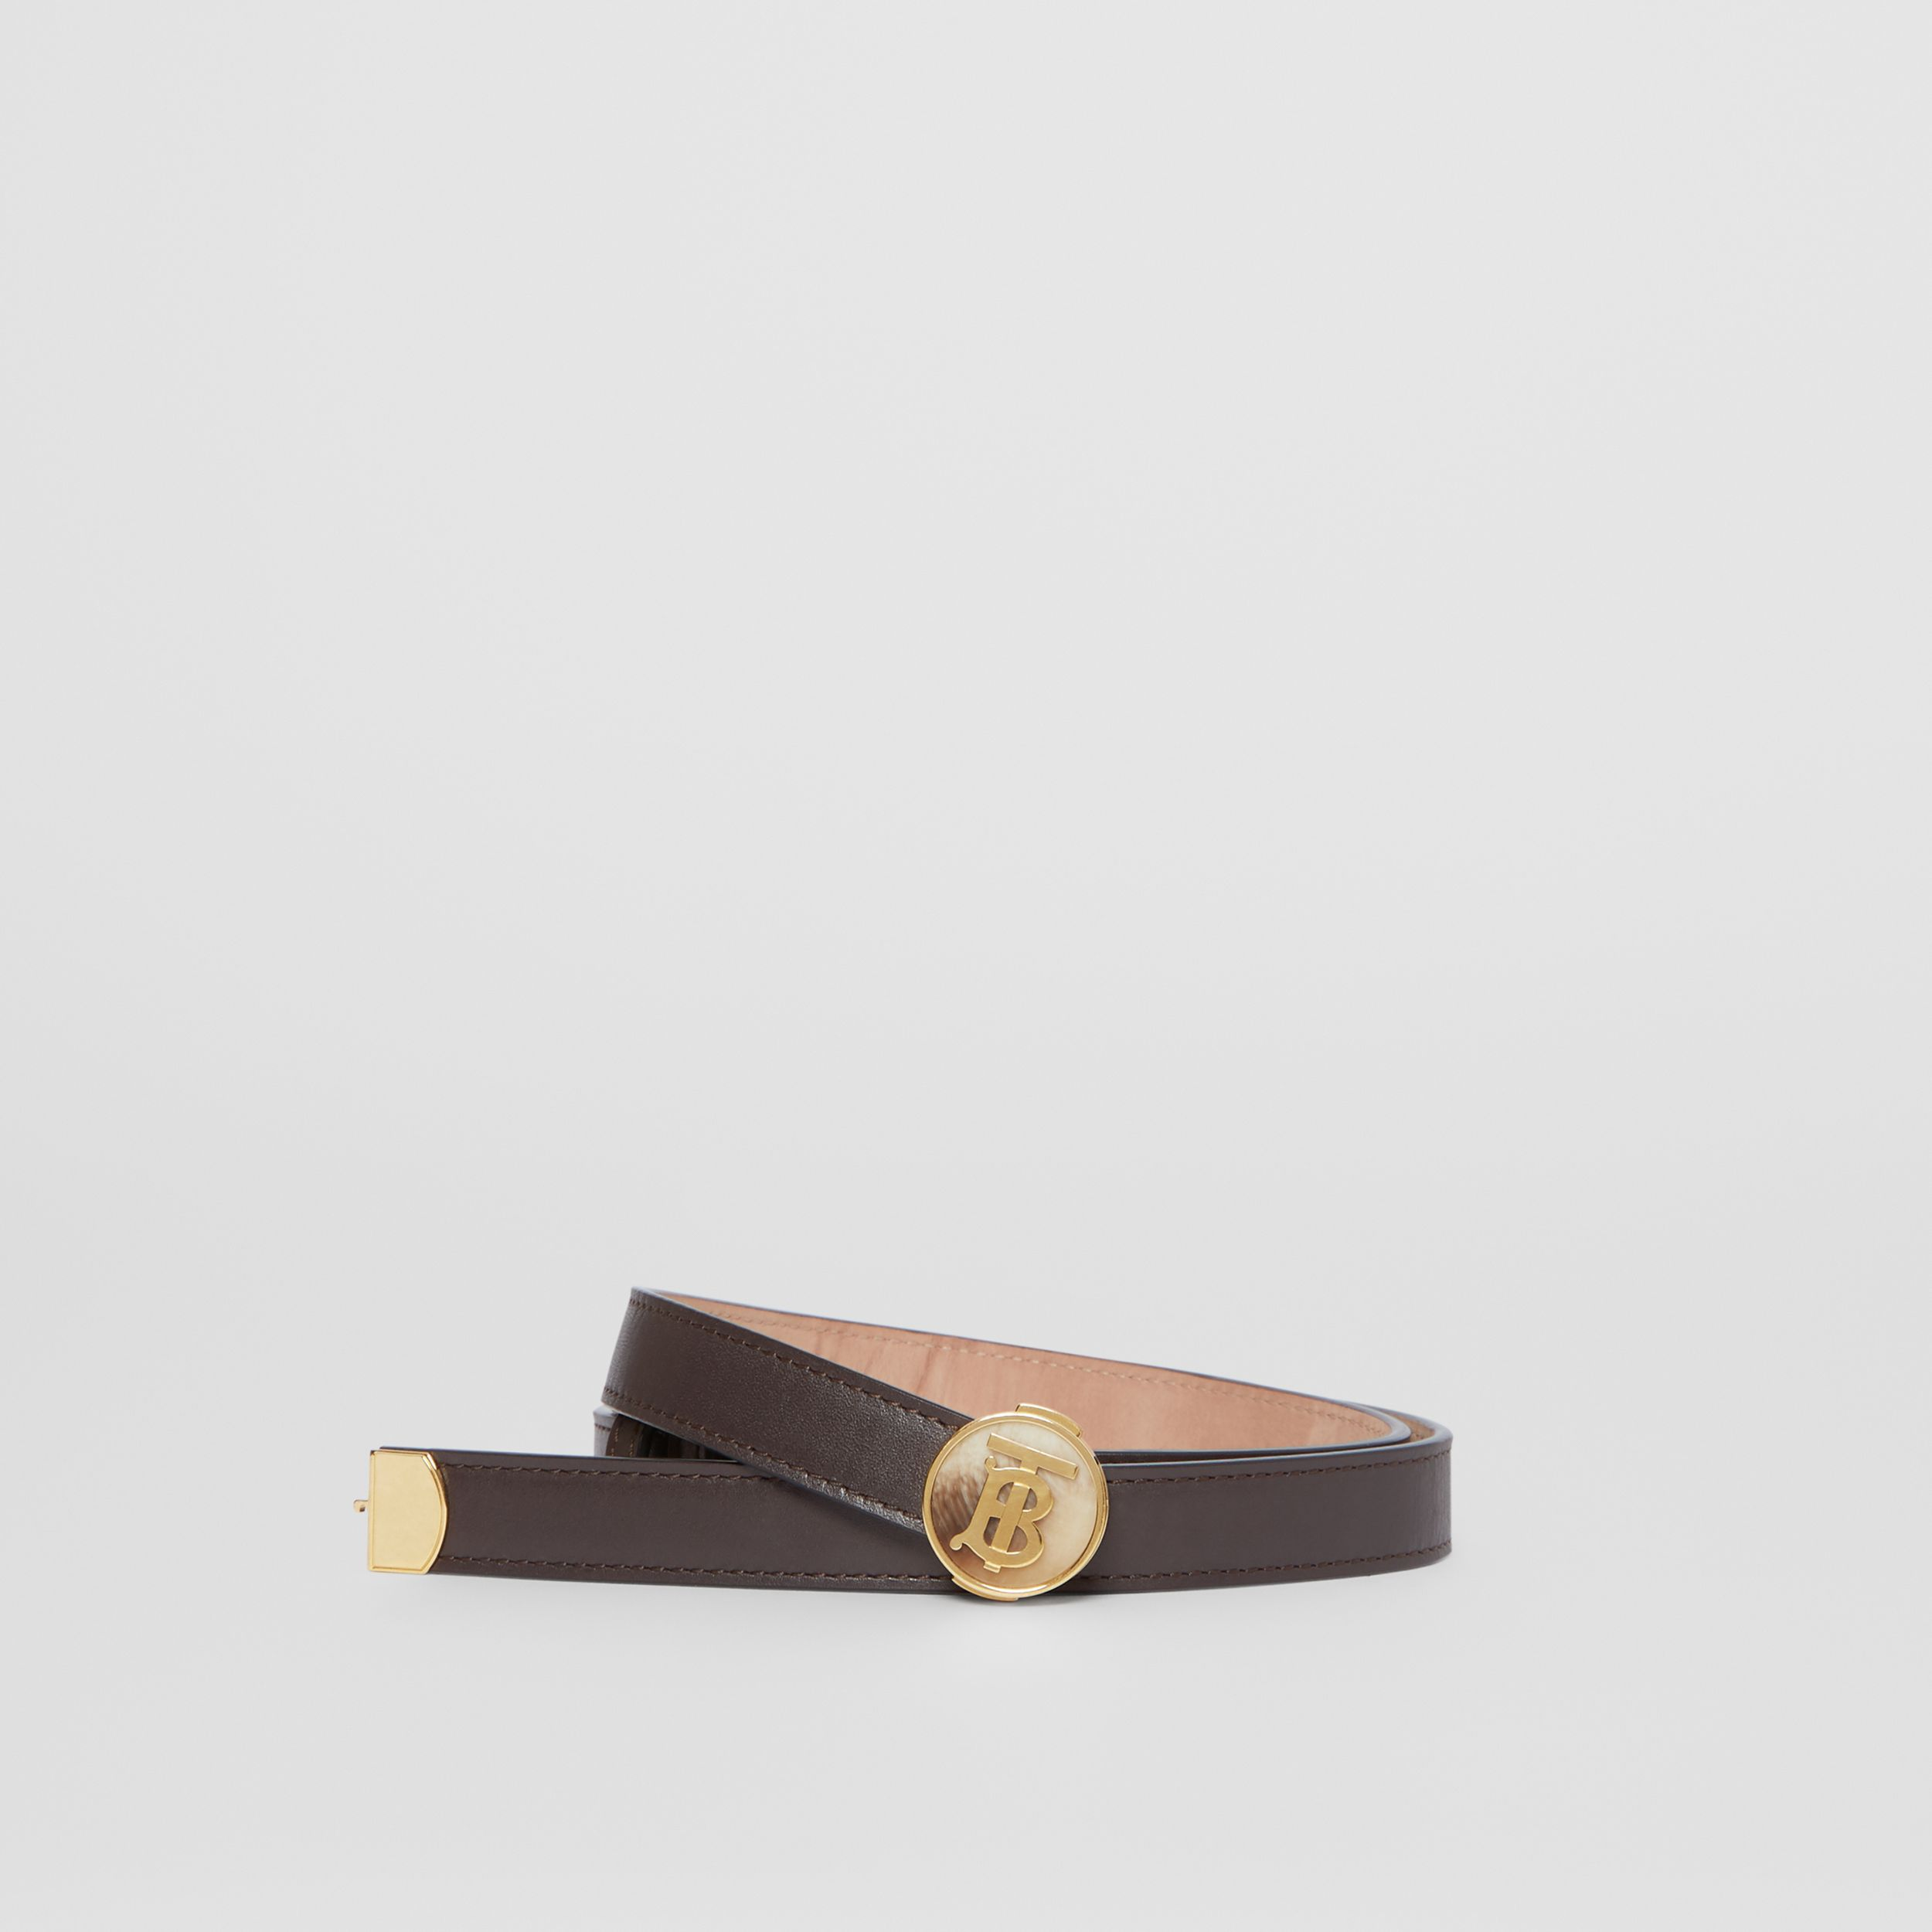 Monogram Motif Leather Belt in Deep Brown | Burberry - 1